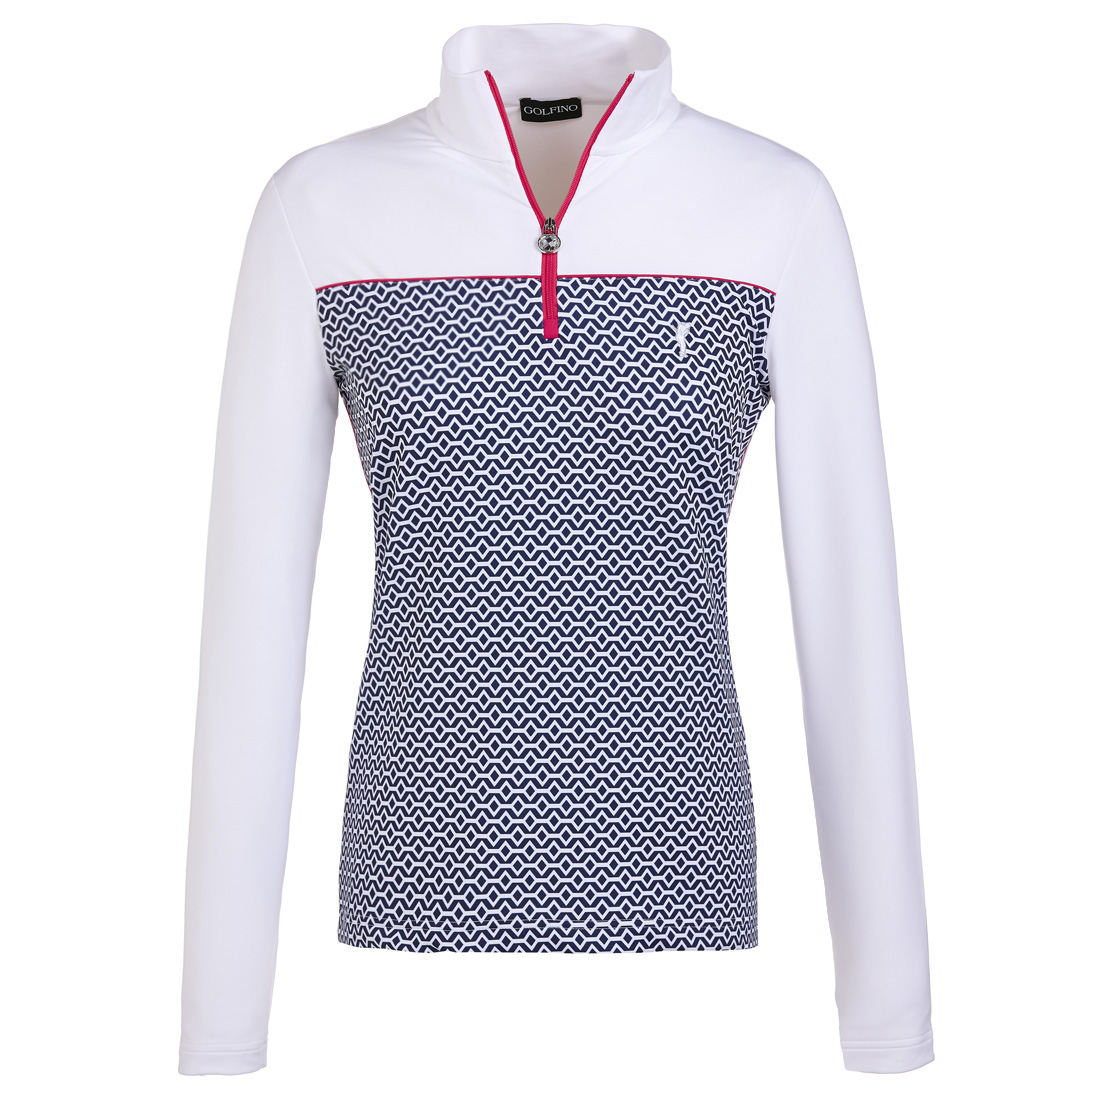 Patterned techno stretch golf underlayer